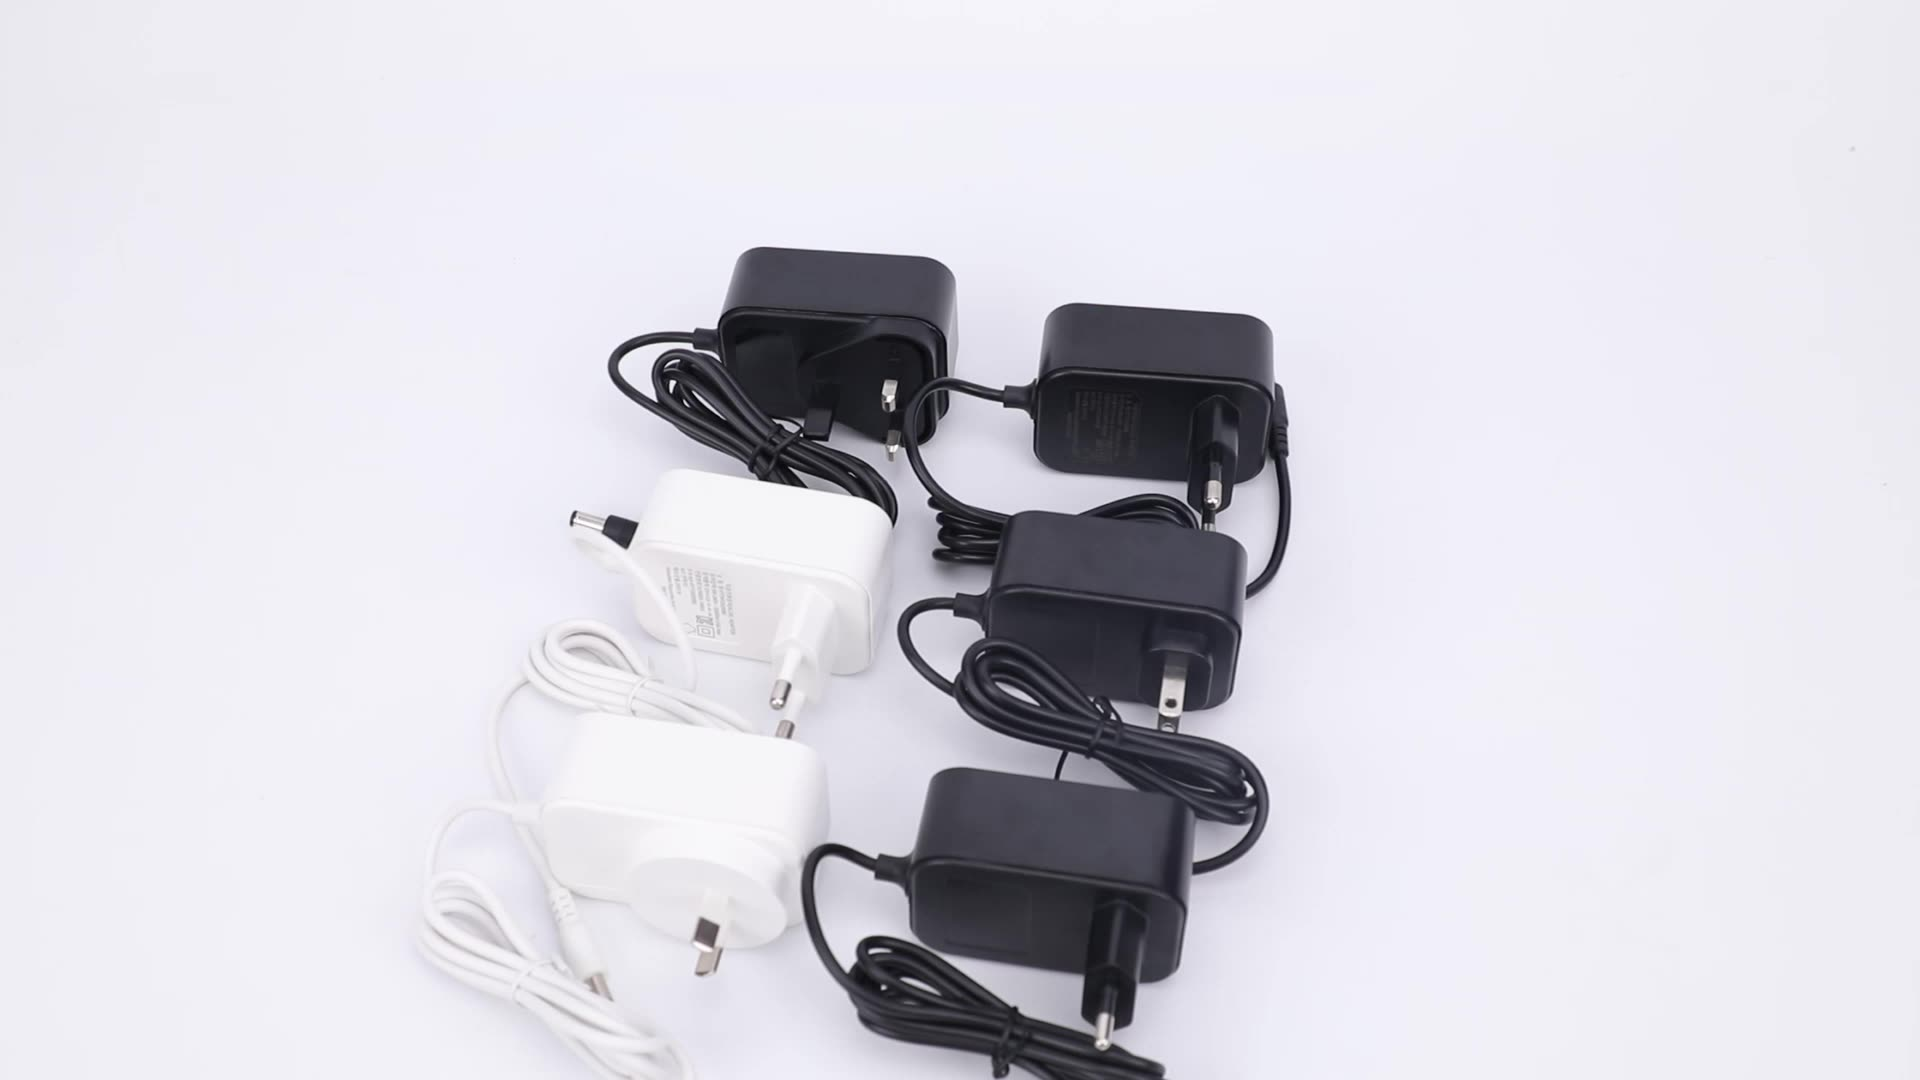 5v 5.5v 12v 13.5v 14.5v 15v 16.5v 19v 24V 1A 1.5A 2.5A 3A 6A 220V 230V CCC CE ETL PSE KC FCC approved ac dc power adapter white